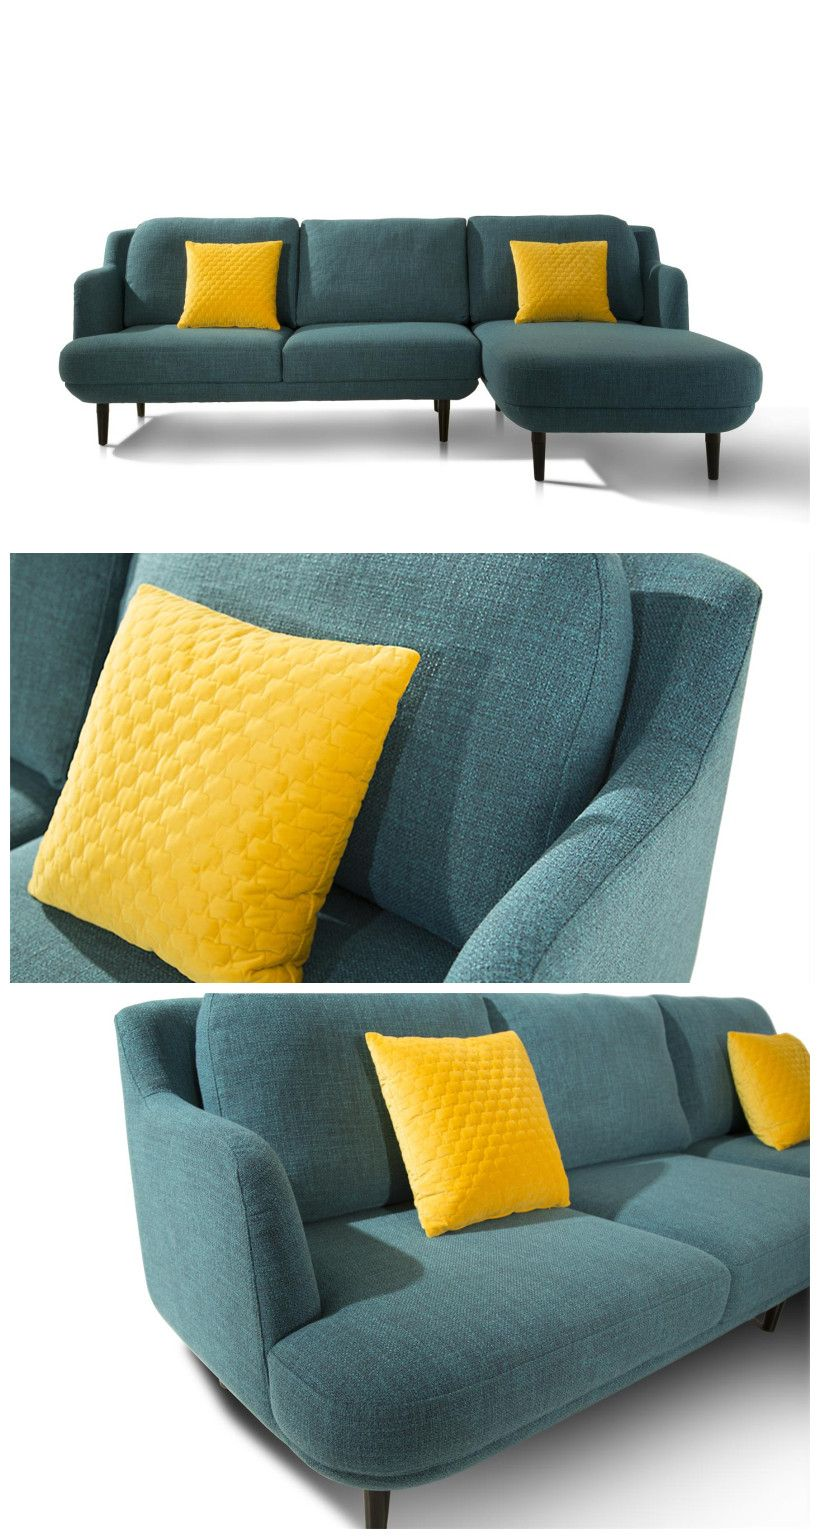 China Supplier Good Quality Small Simple Sectional Sofa